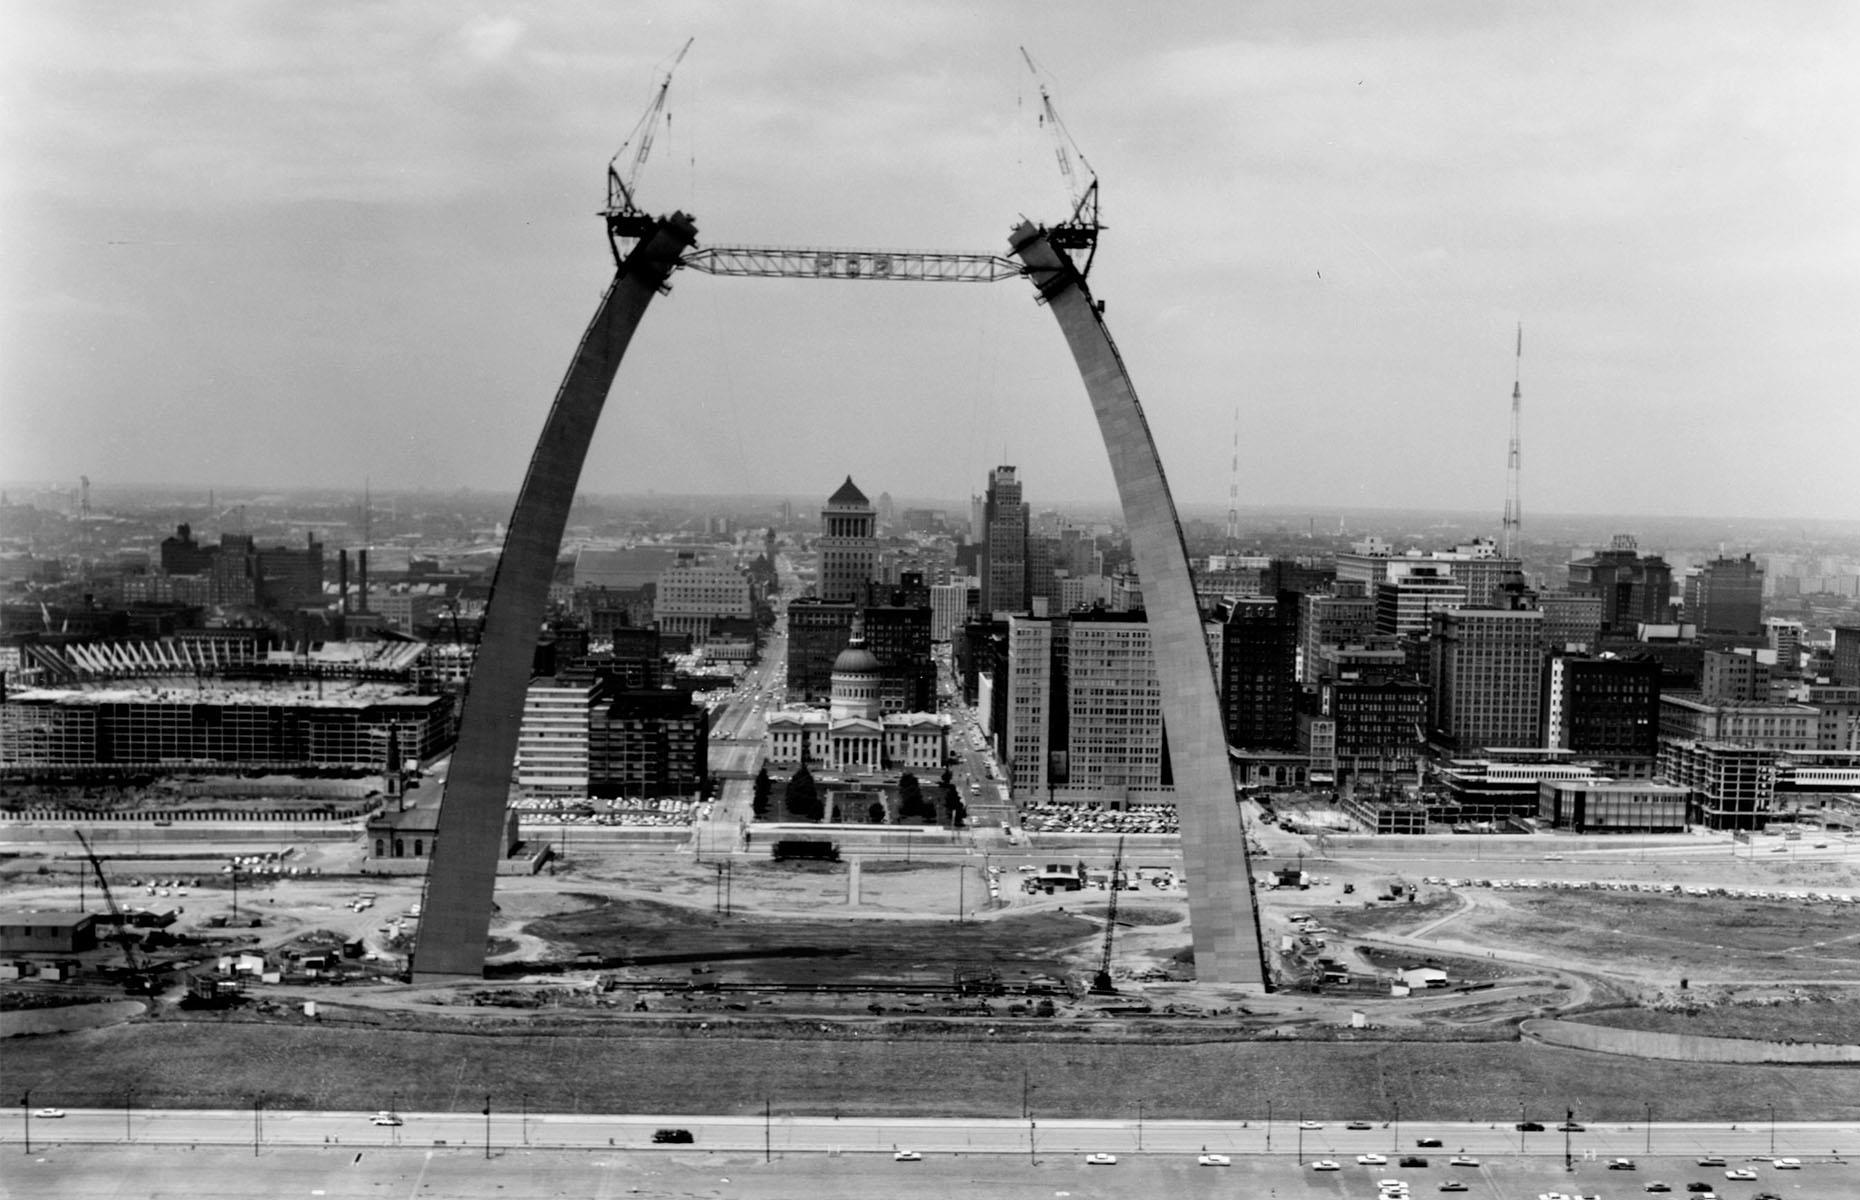 Slide 33 of 47: An enduring symbol of St Louis, Missouri, the Gateway Arch has watched over the waterfront here since the 1960s. It was realized as a monument to westward expansion – the movement of settlers towards the American west during the 19th century, and a concept pioneered by President Thomas Jefferson. It's seen here taking shape in 1965.